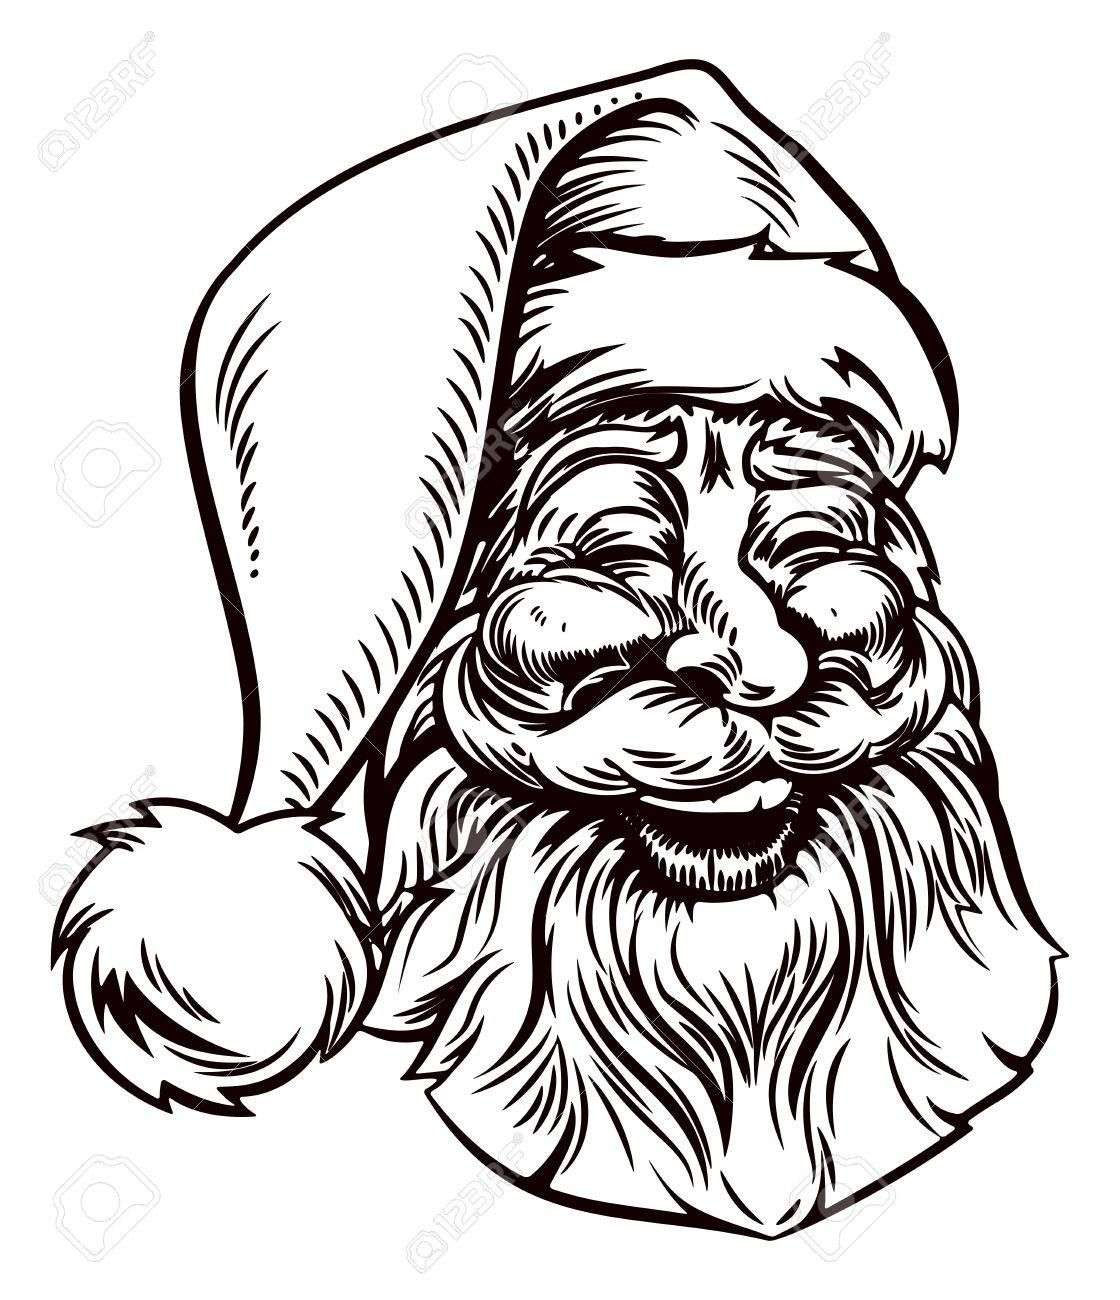 Christmas clipart woodcut clip freeuse library Image result for VINTAGE SANTA WOODCUT ROYALTY FREE | Santa ... clip freeuse library